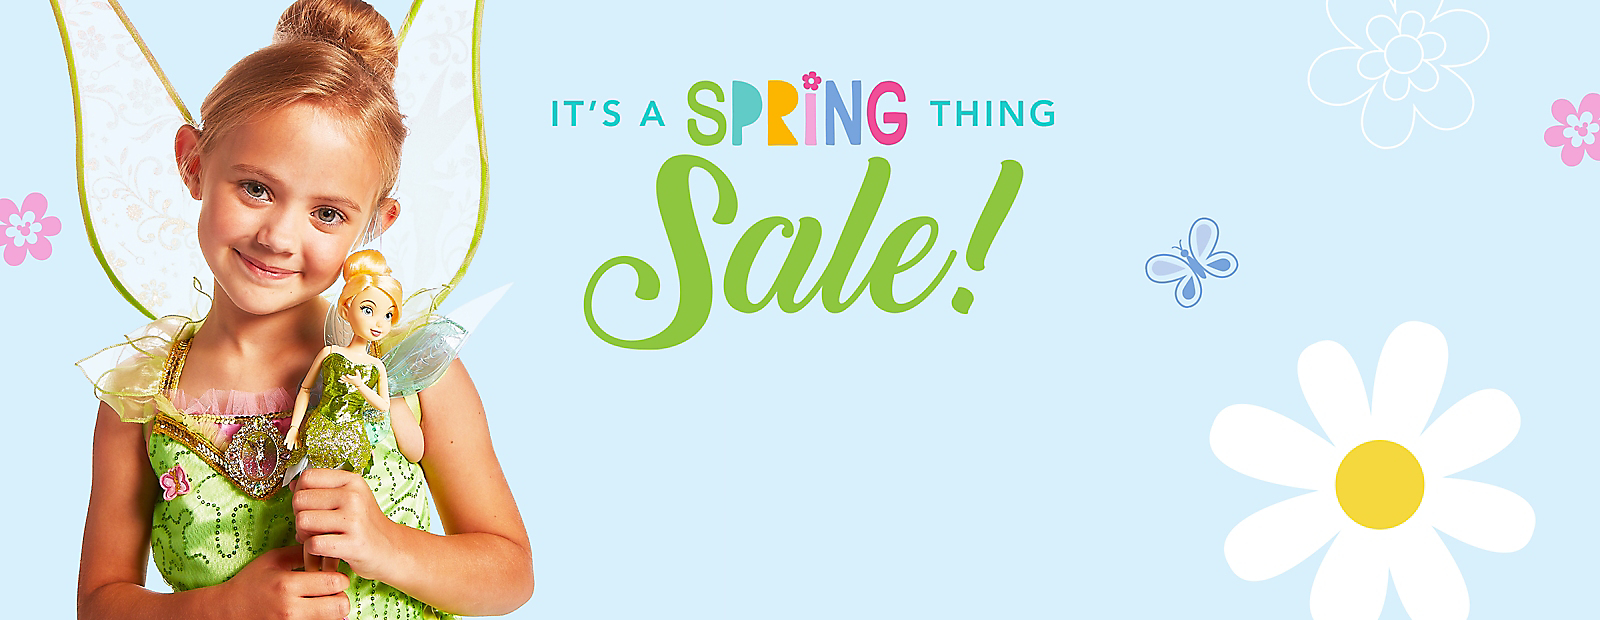 Background image of Spring Savings Event on Now!